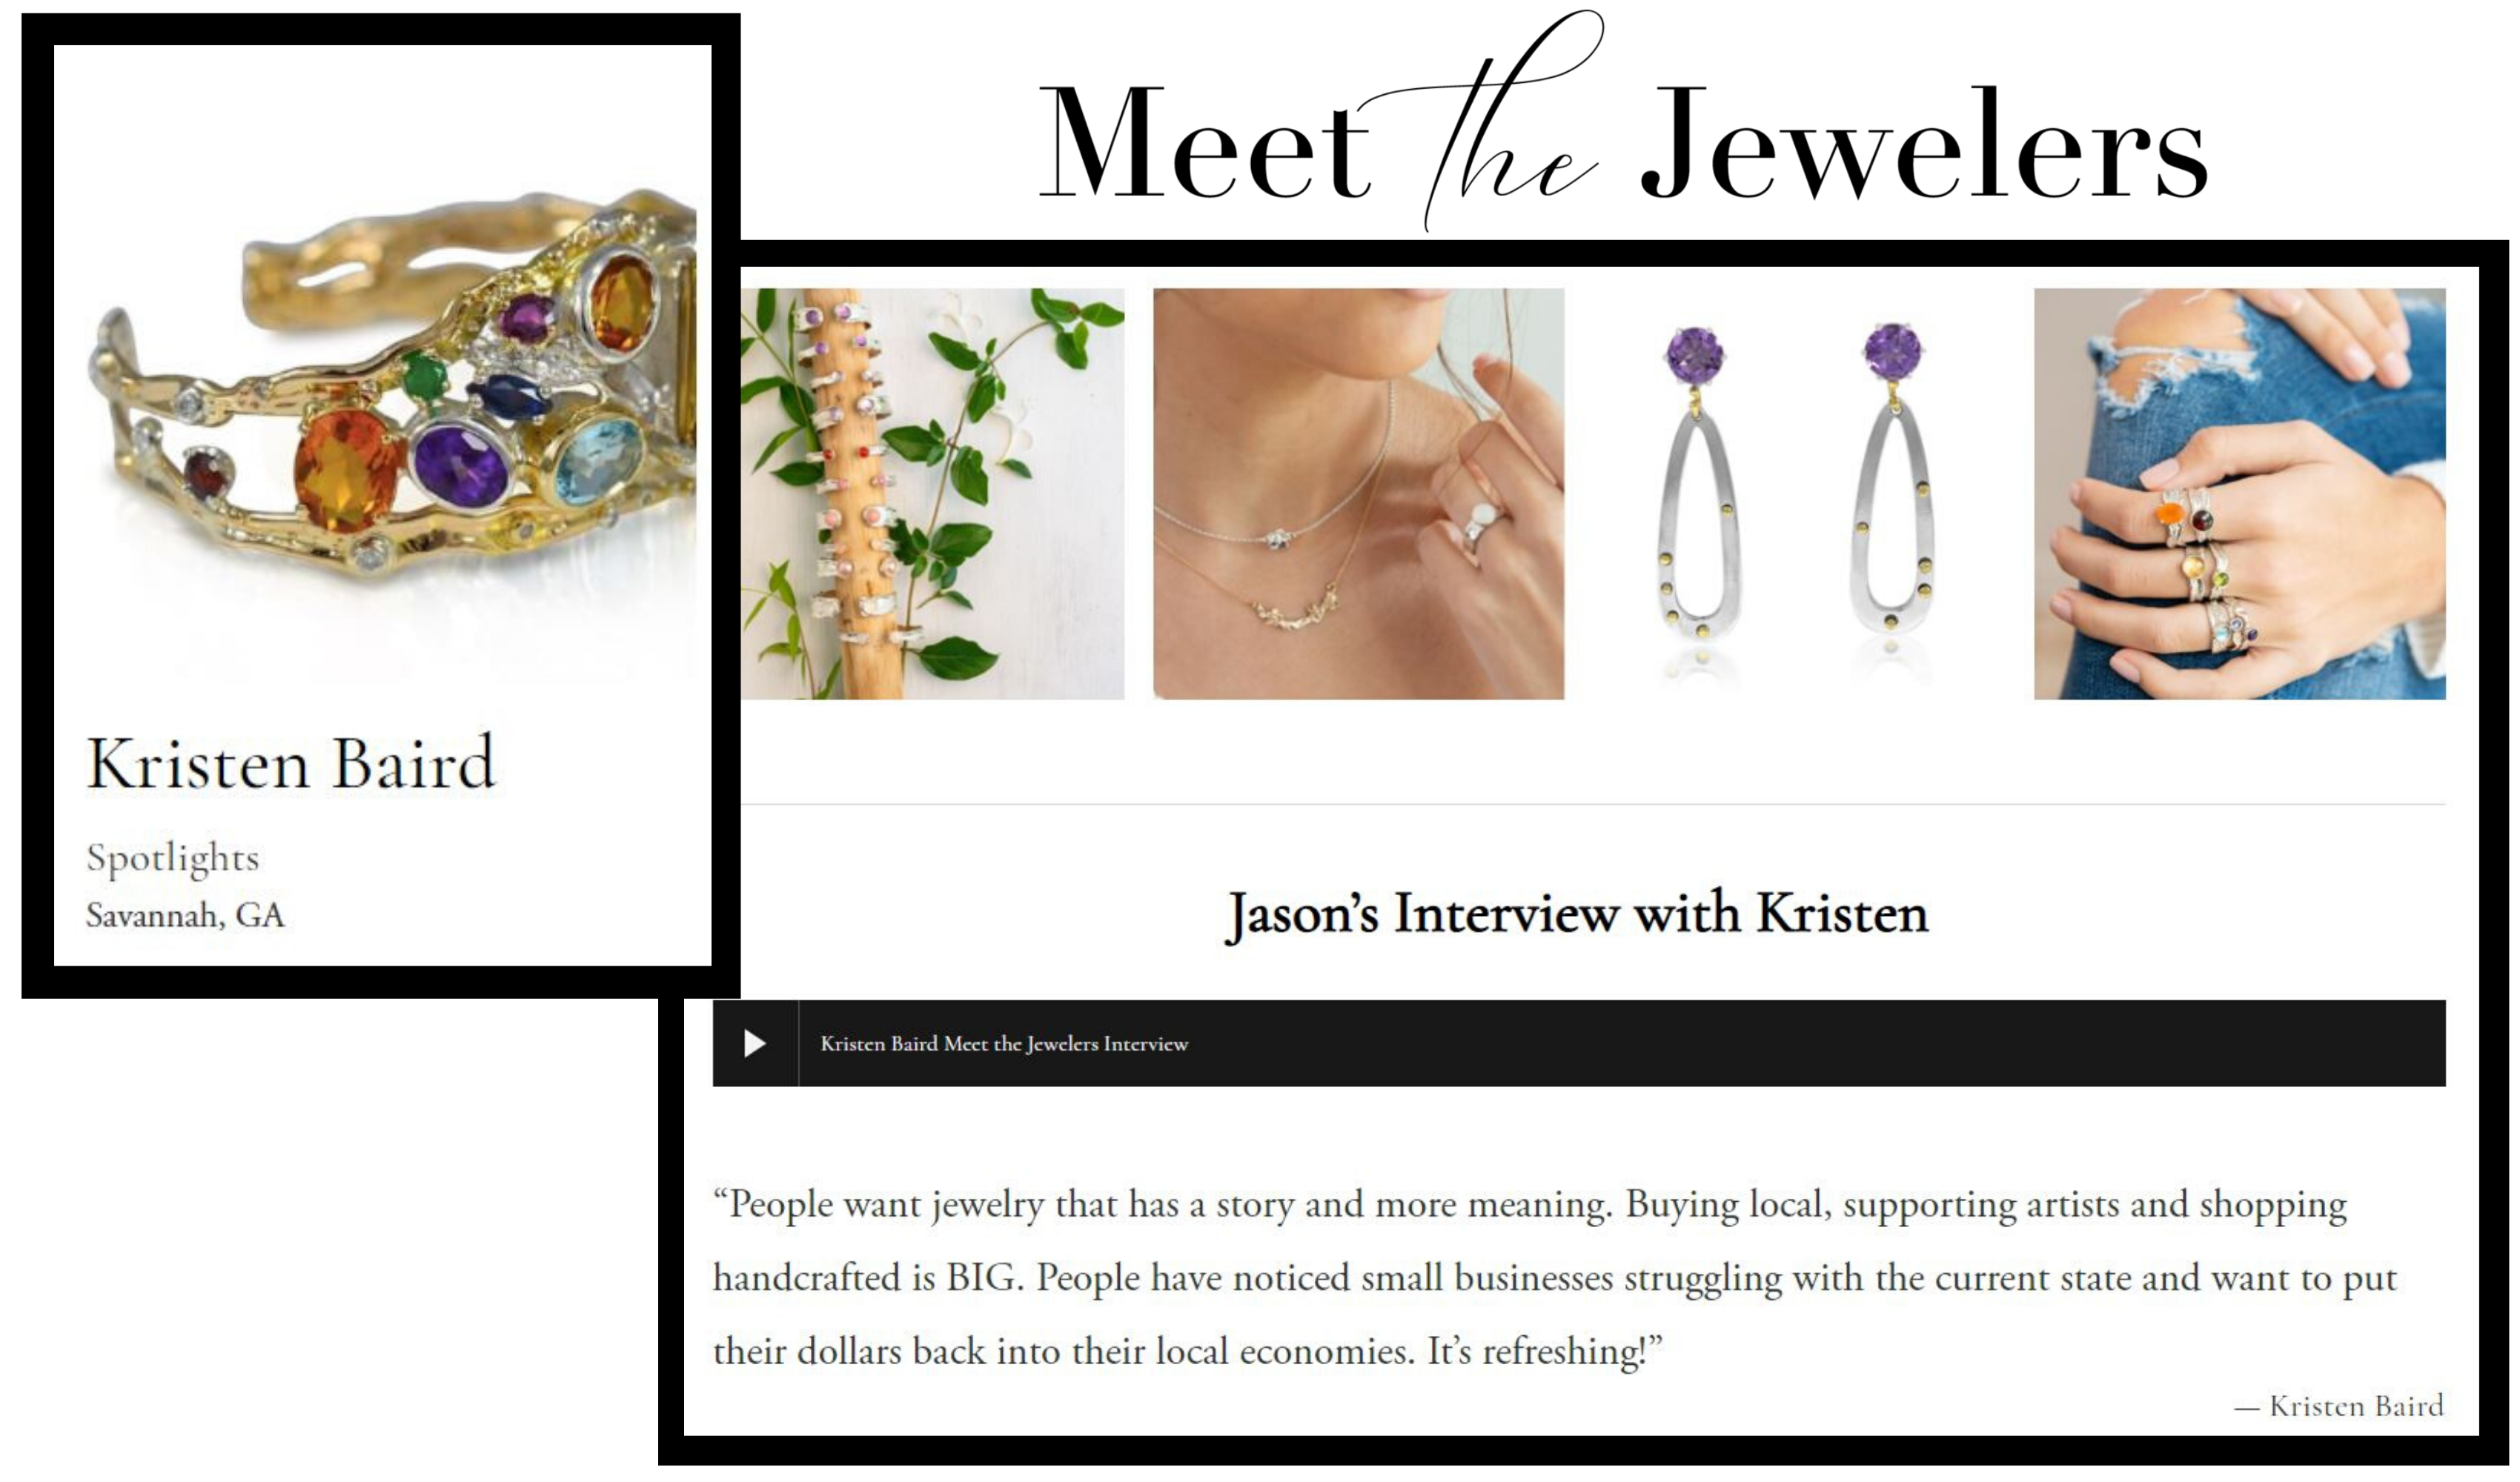 Meet the jewelers features Kristen Baird